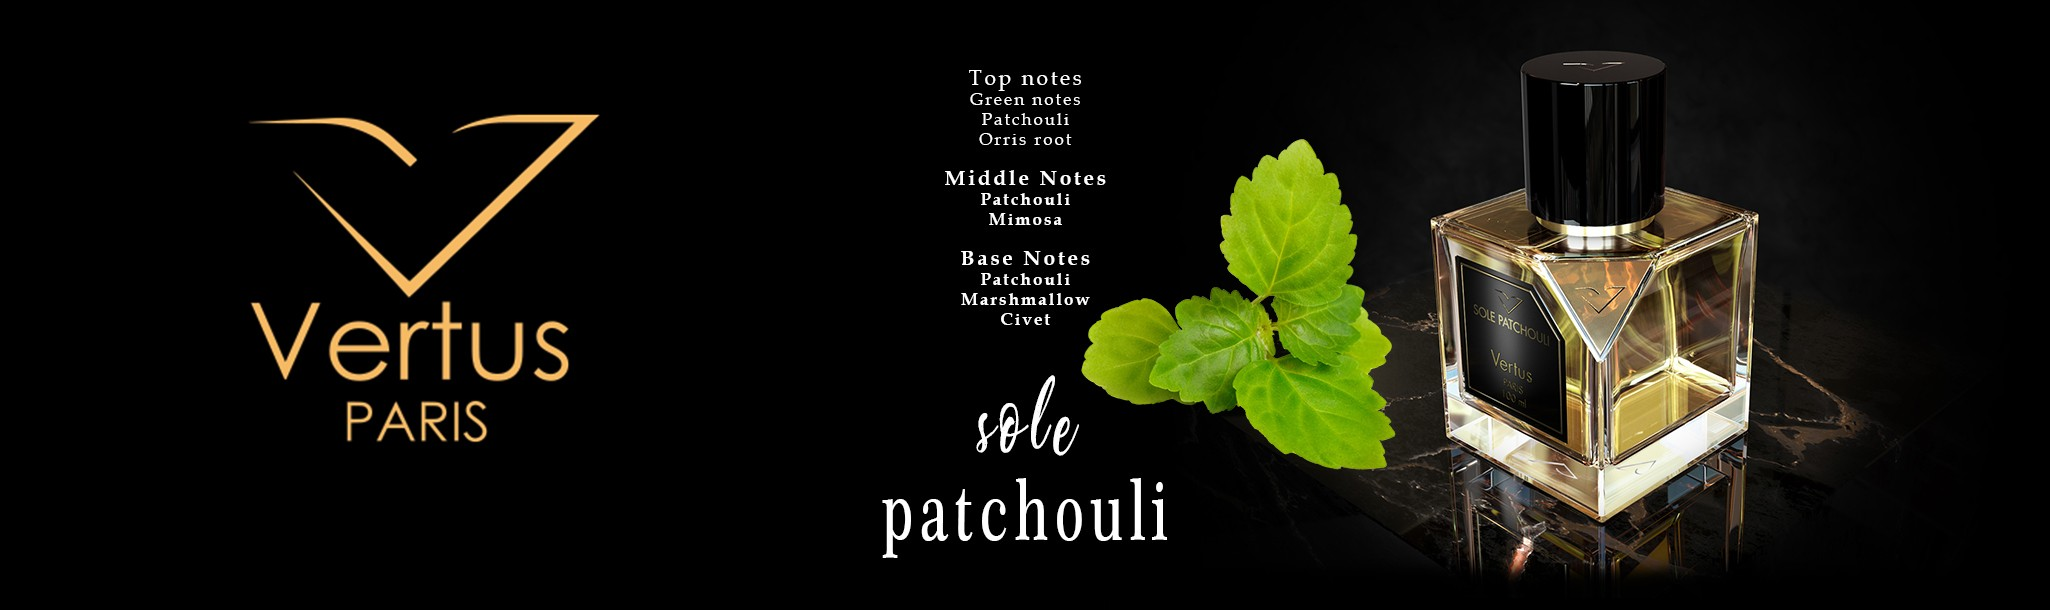 Vertus Sole Patchouli